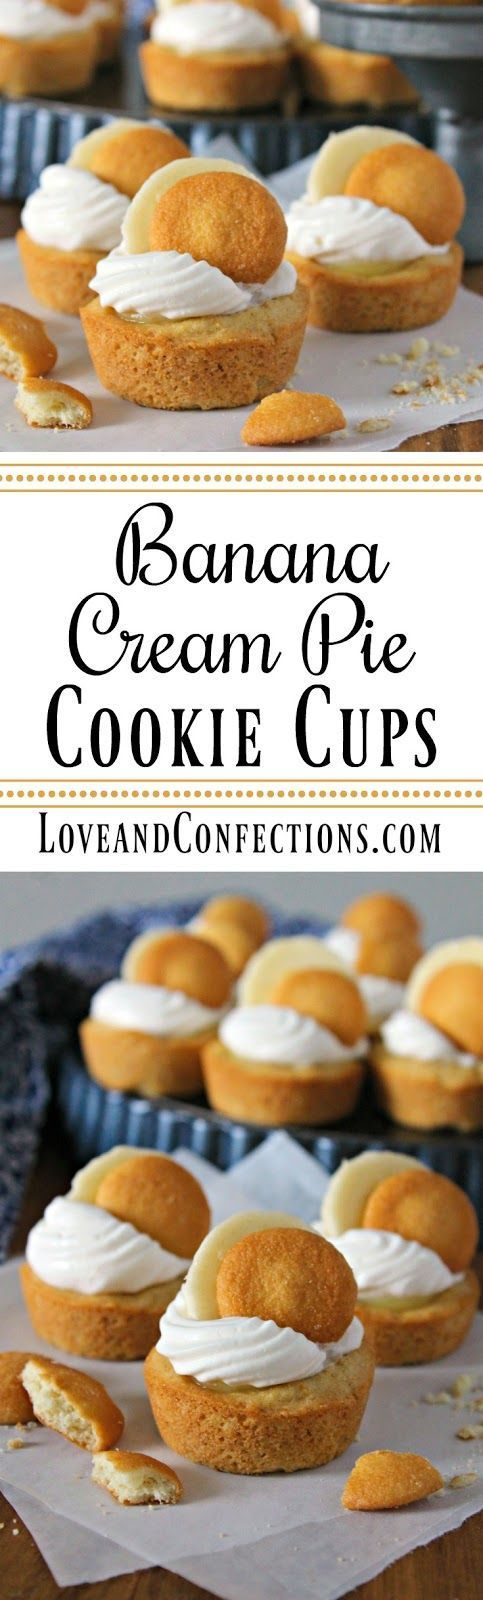 Banana Cream Pie Cookie Cups from LoveandConfections.com made with @dixiecrystals #ad